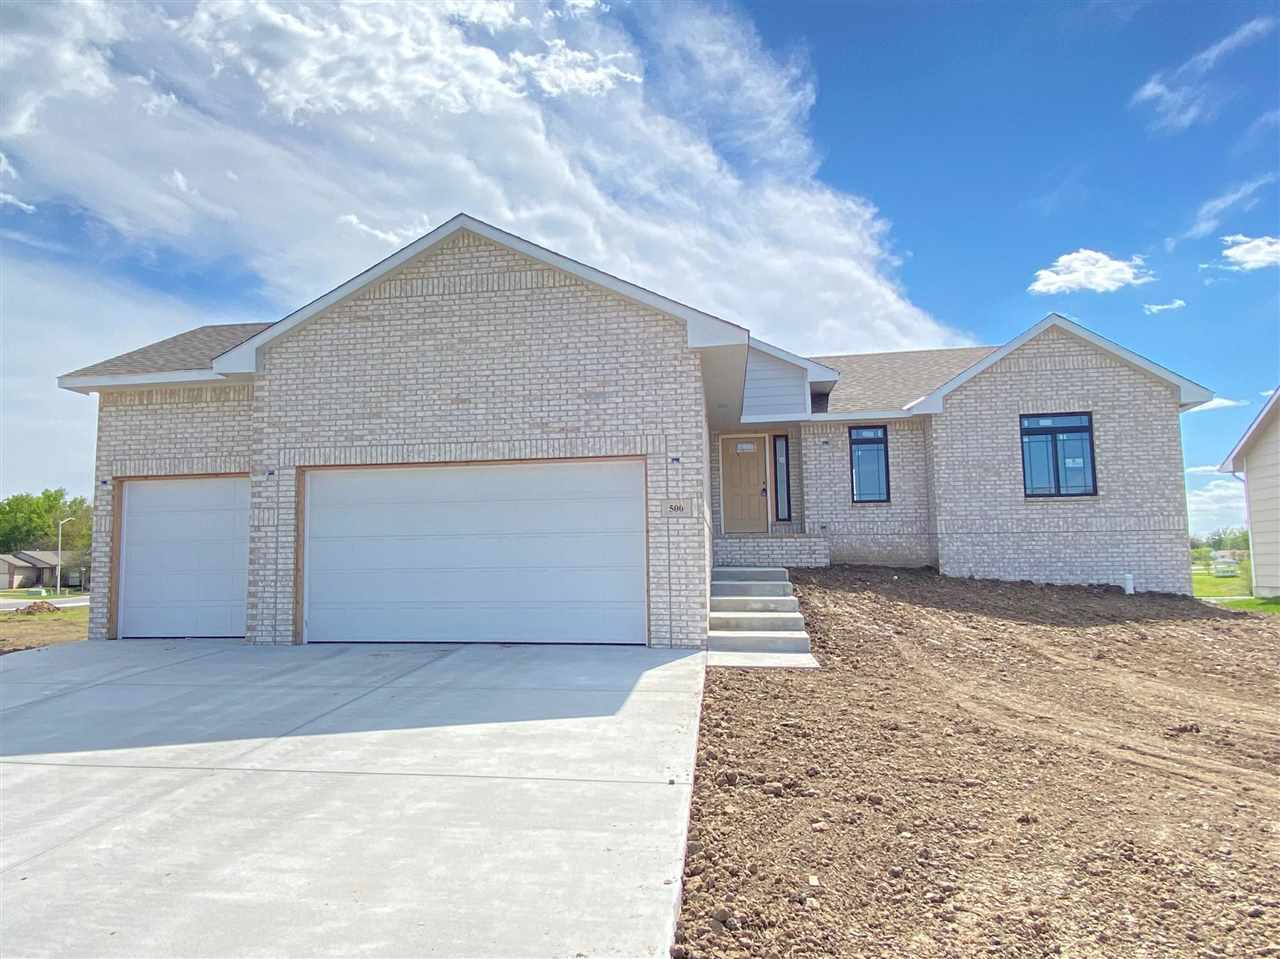 Brand new 5 bedroom 3 full bath home in the Andover school district! Complete with a spacious view-o